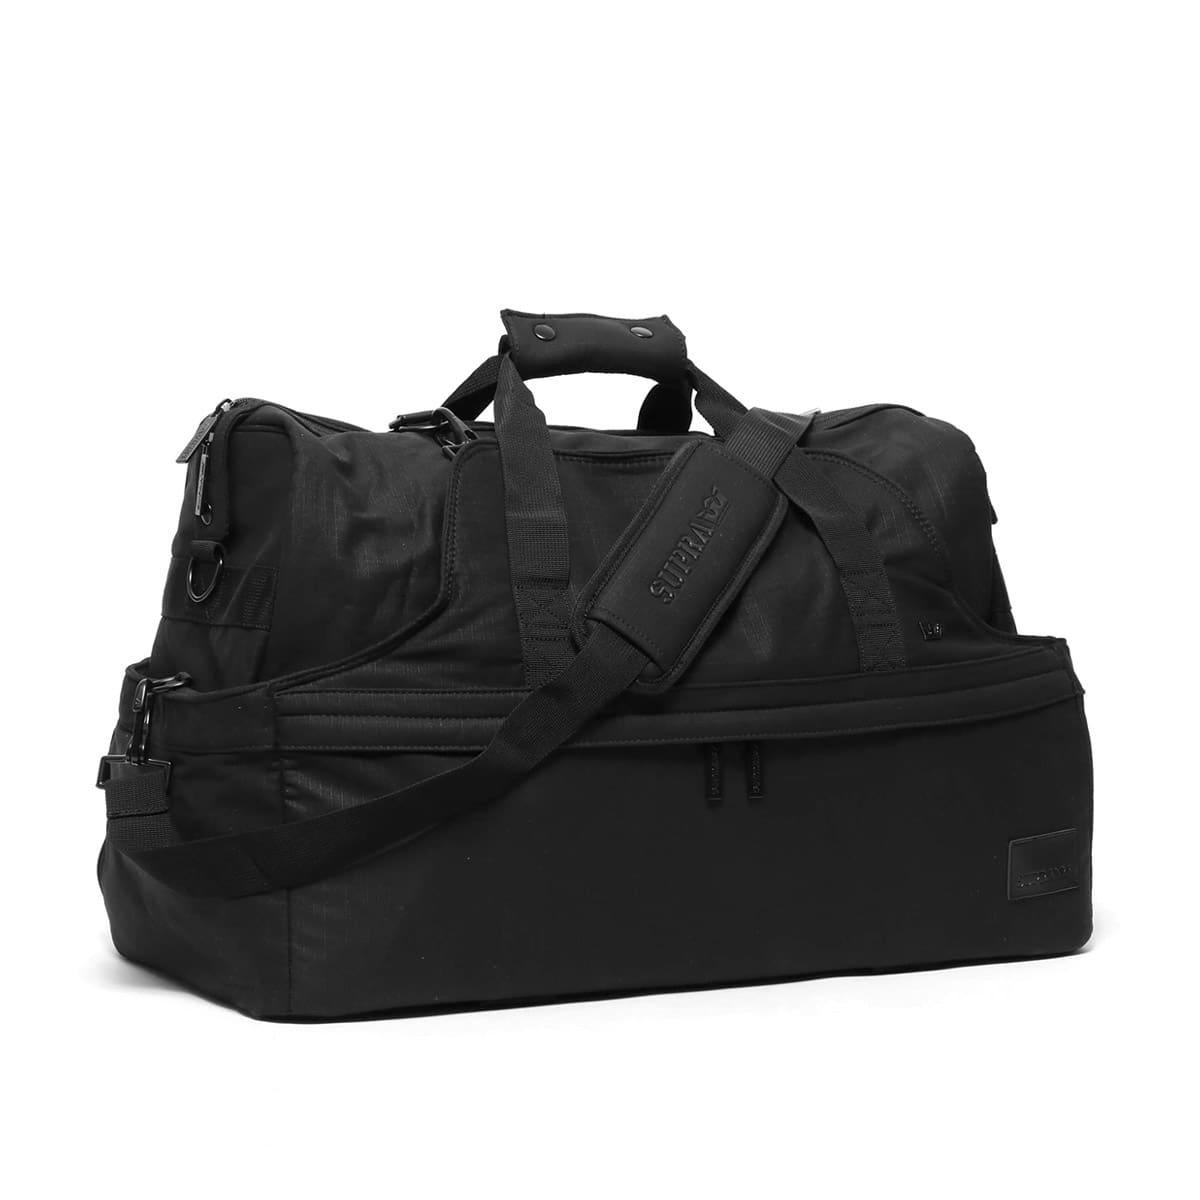 """SUPRA TWO-IN-ONE DUFFLE BAG BLACK 14HO-I""_photo_2"